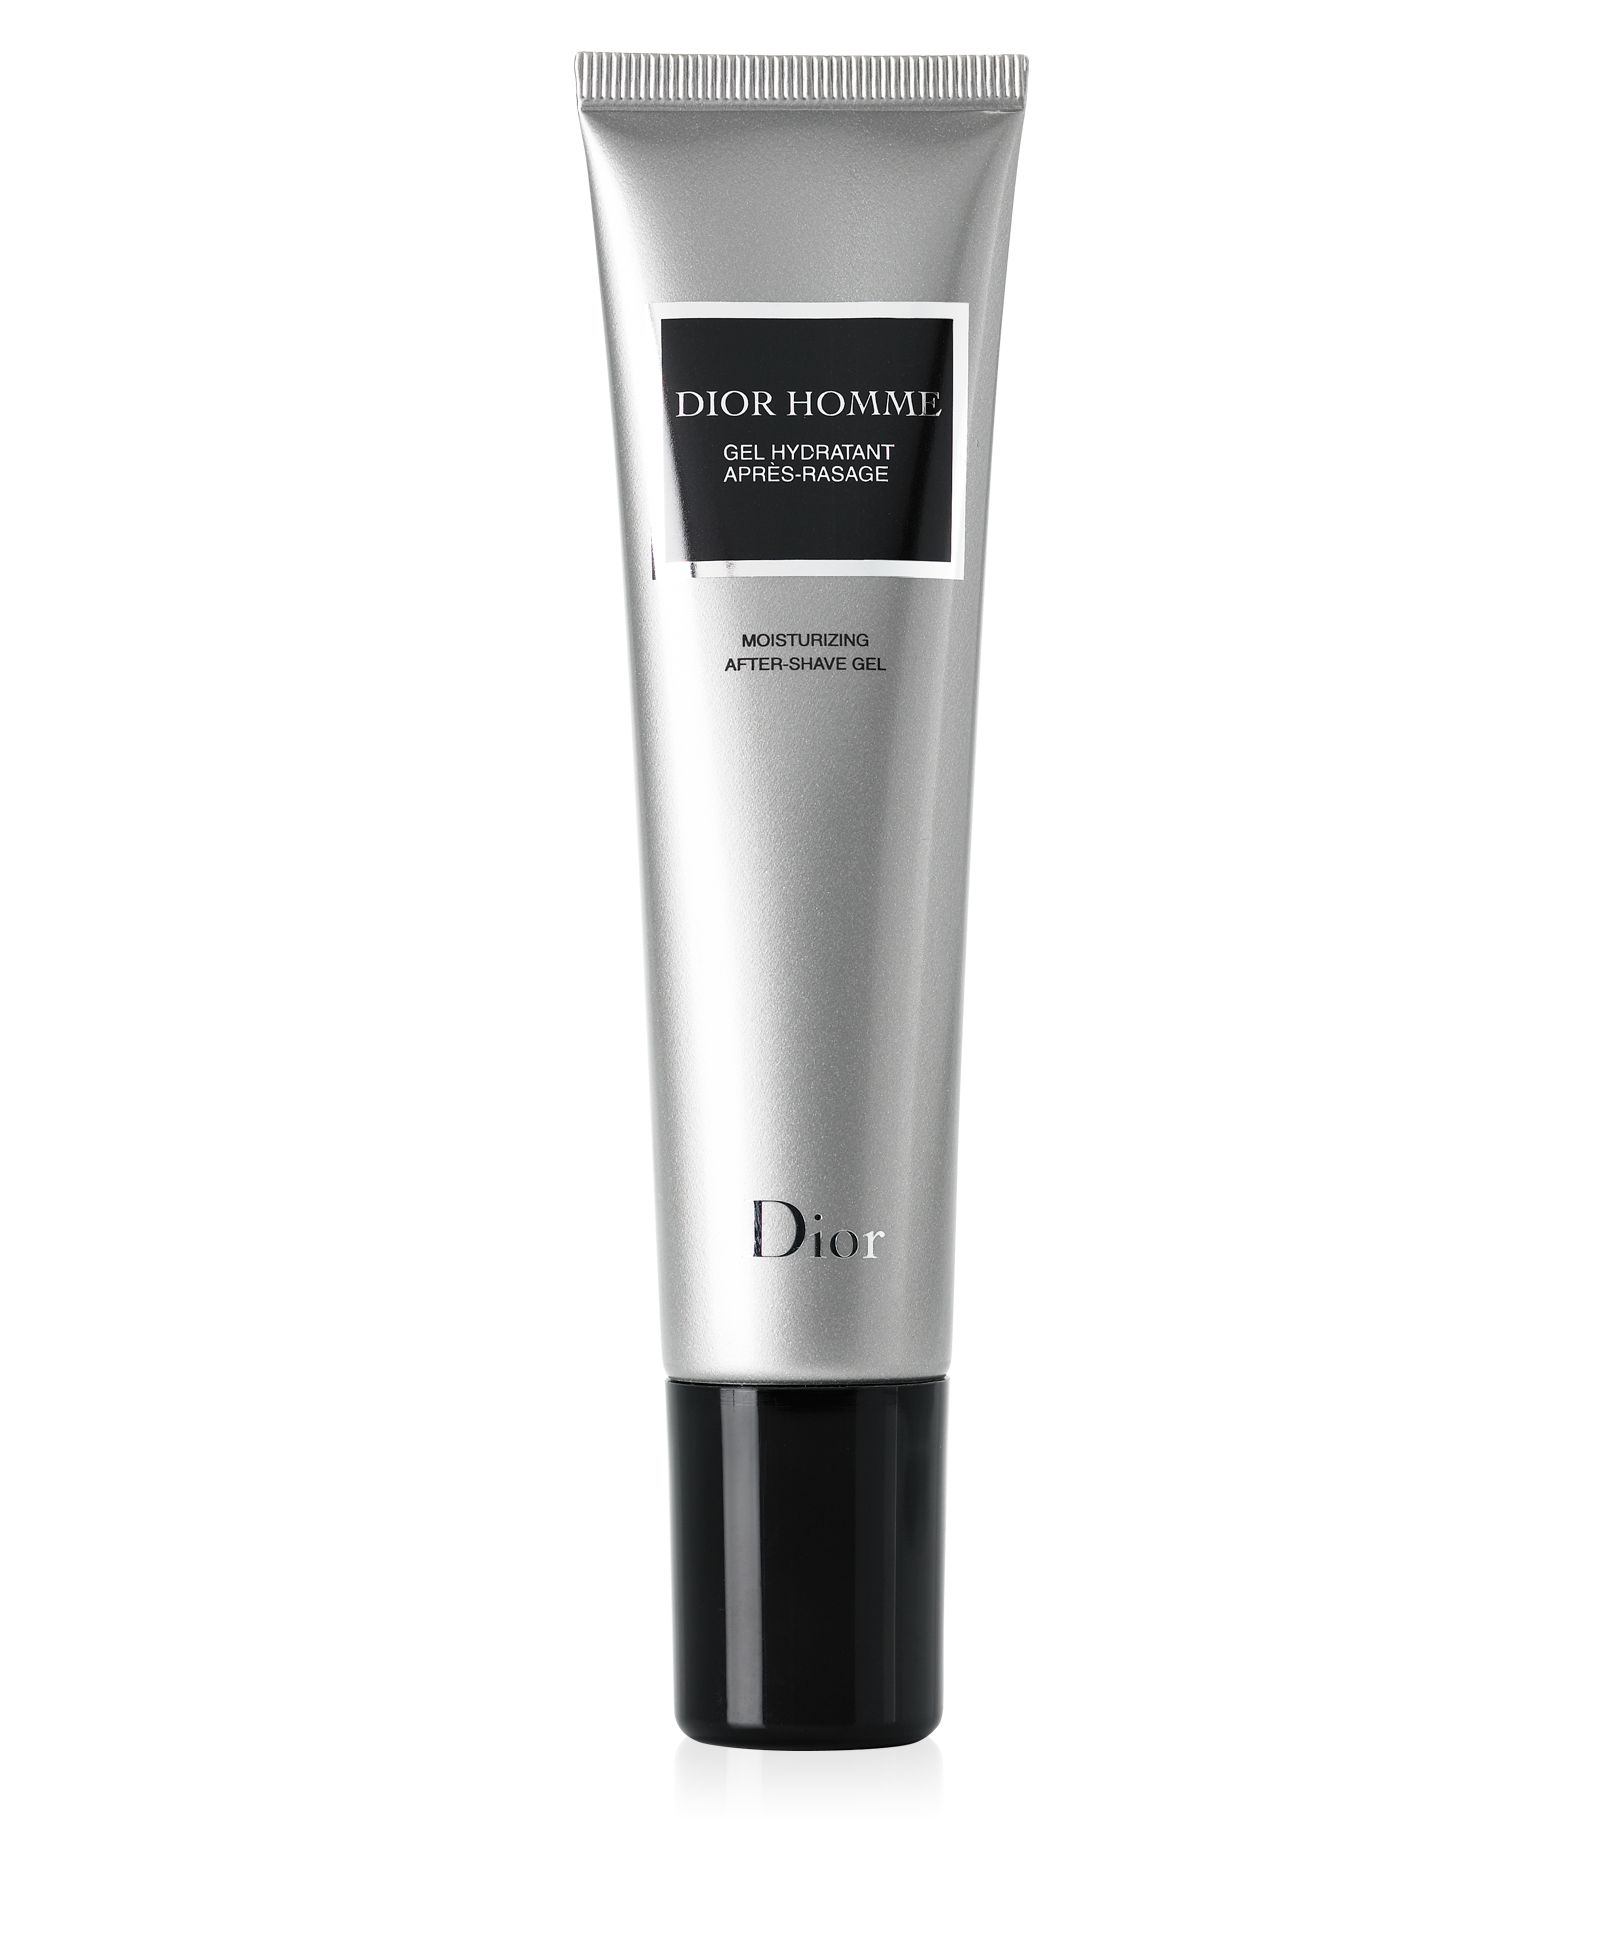 Dior Homme Moisturizing After Shave Gel